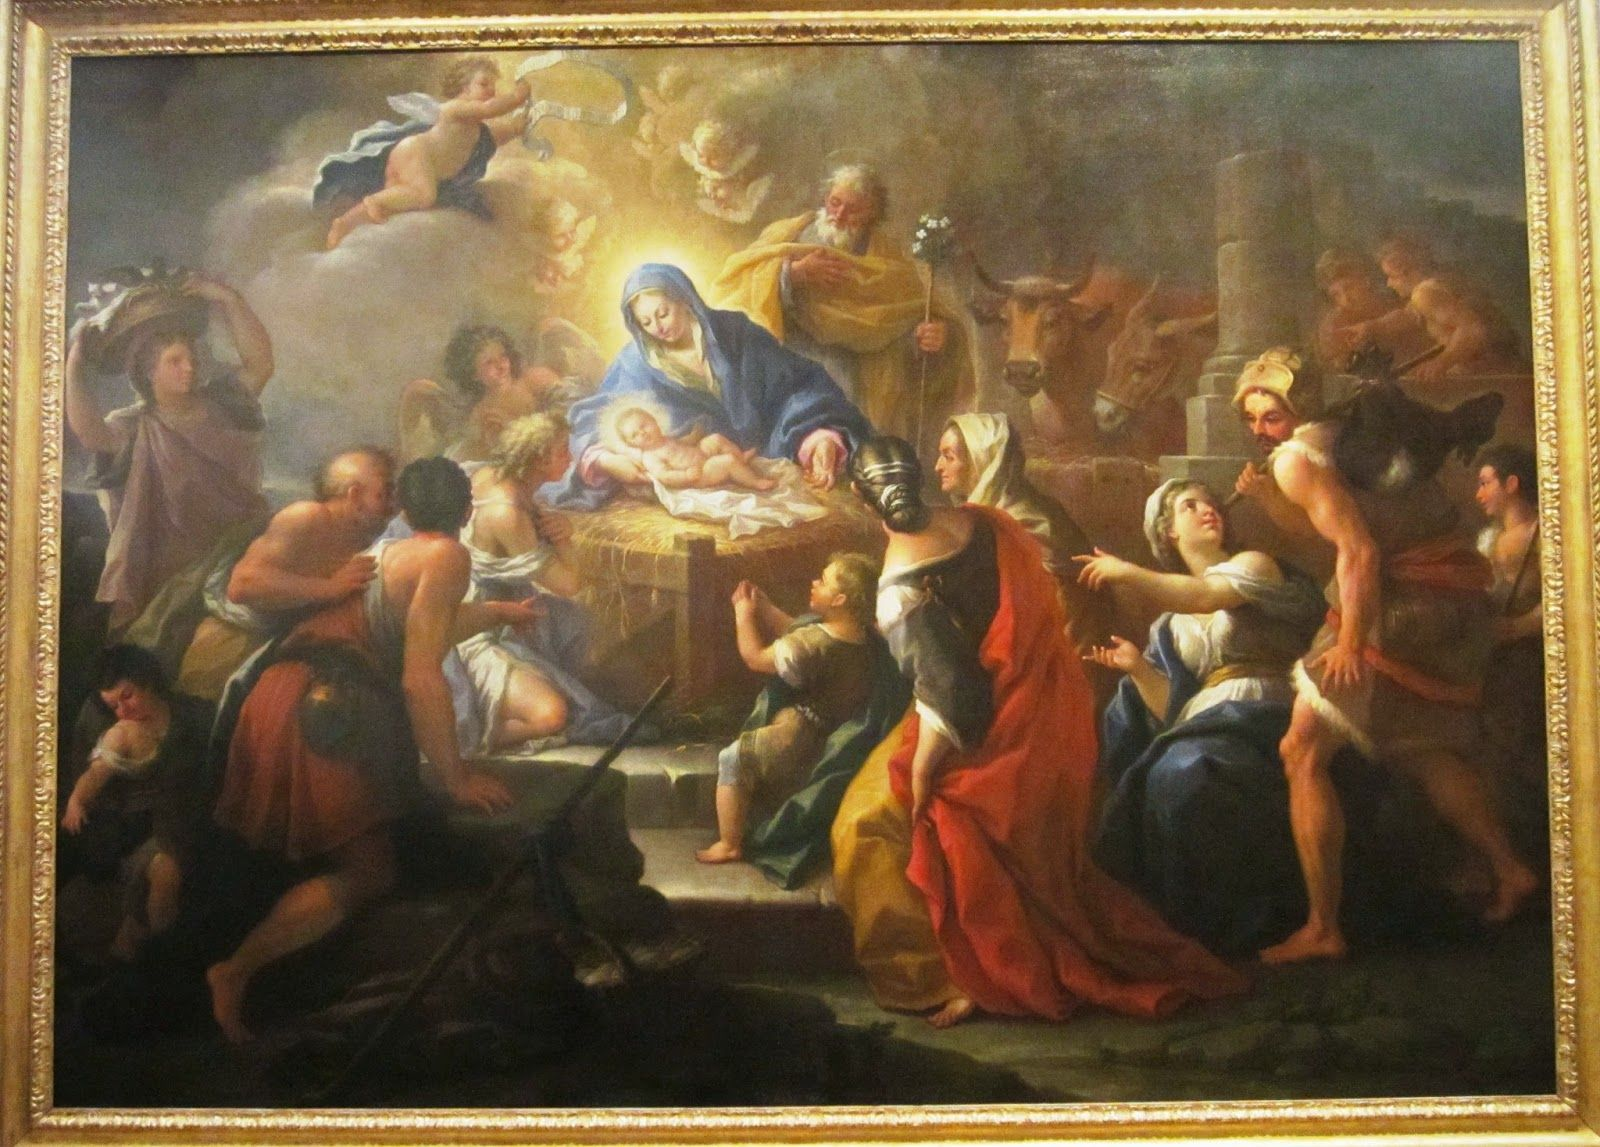 a critique of the adoration of the shepherds a painting by paolo de matteis View over 112 paolo de' matteis the adoration of the shepherds the angel here may be compared to the figure of apollo in de matteis' painting of.